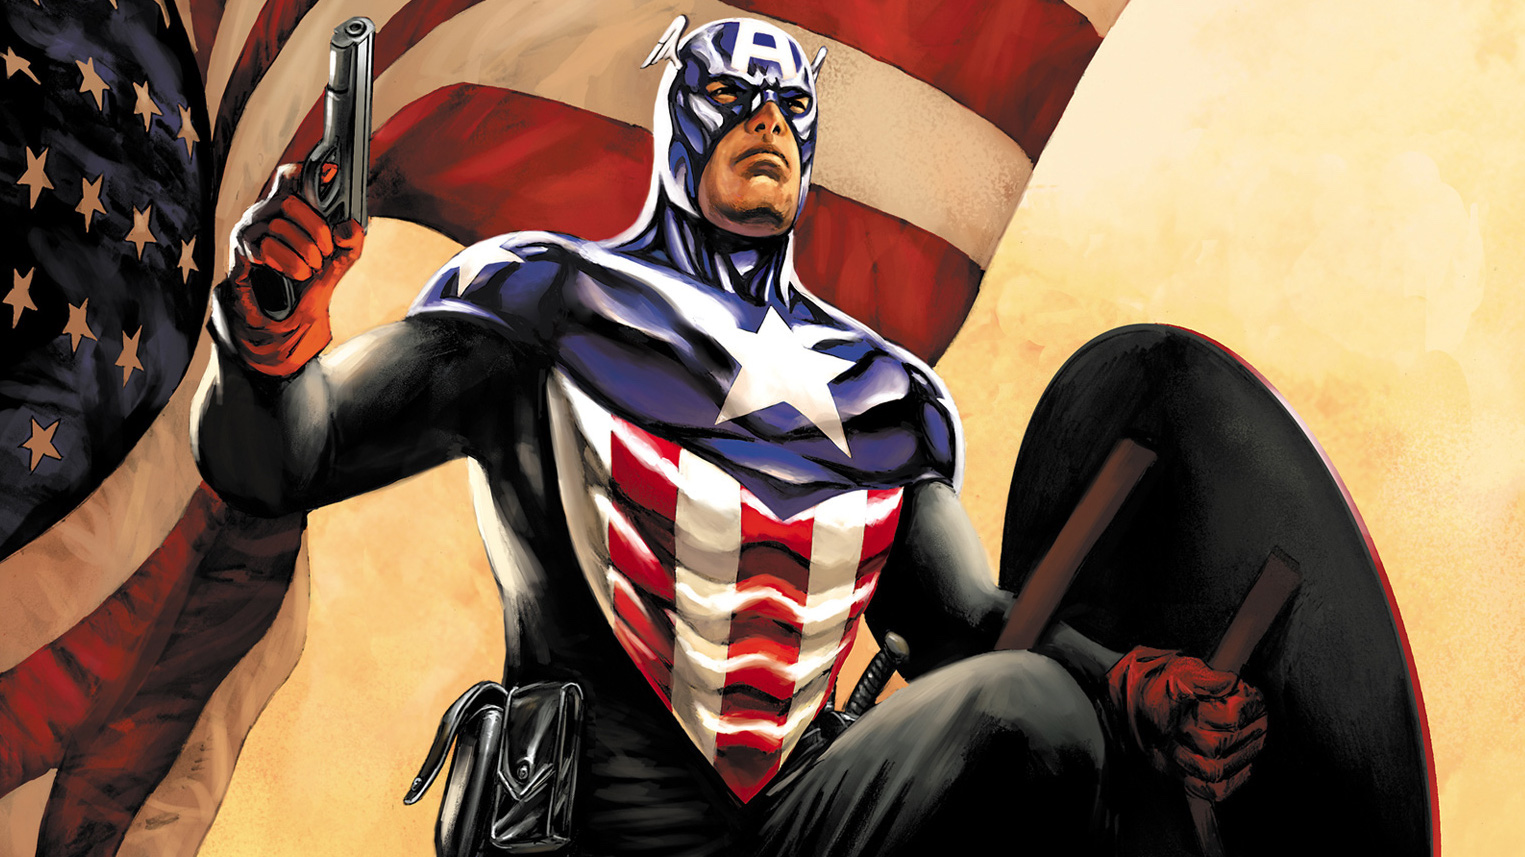 3. When Bucky became the new Cap, he did an amazing job. But he never seemed happy to take up this position. As soon as Rogers returned, he tried to retire immediately.